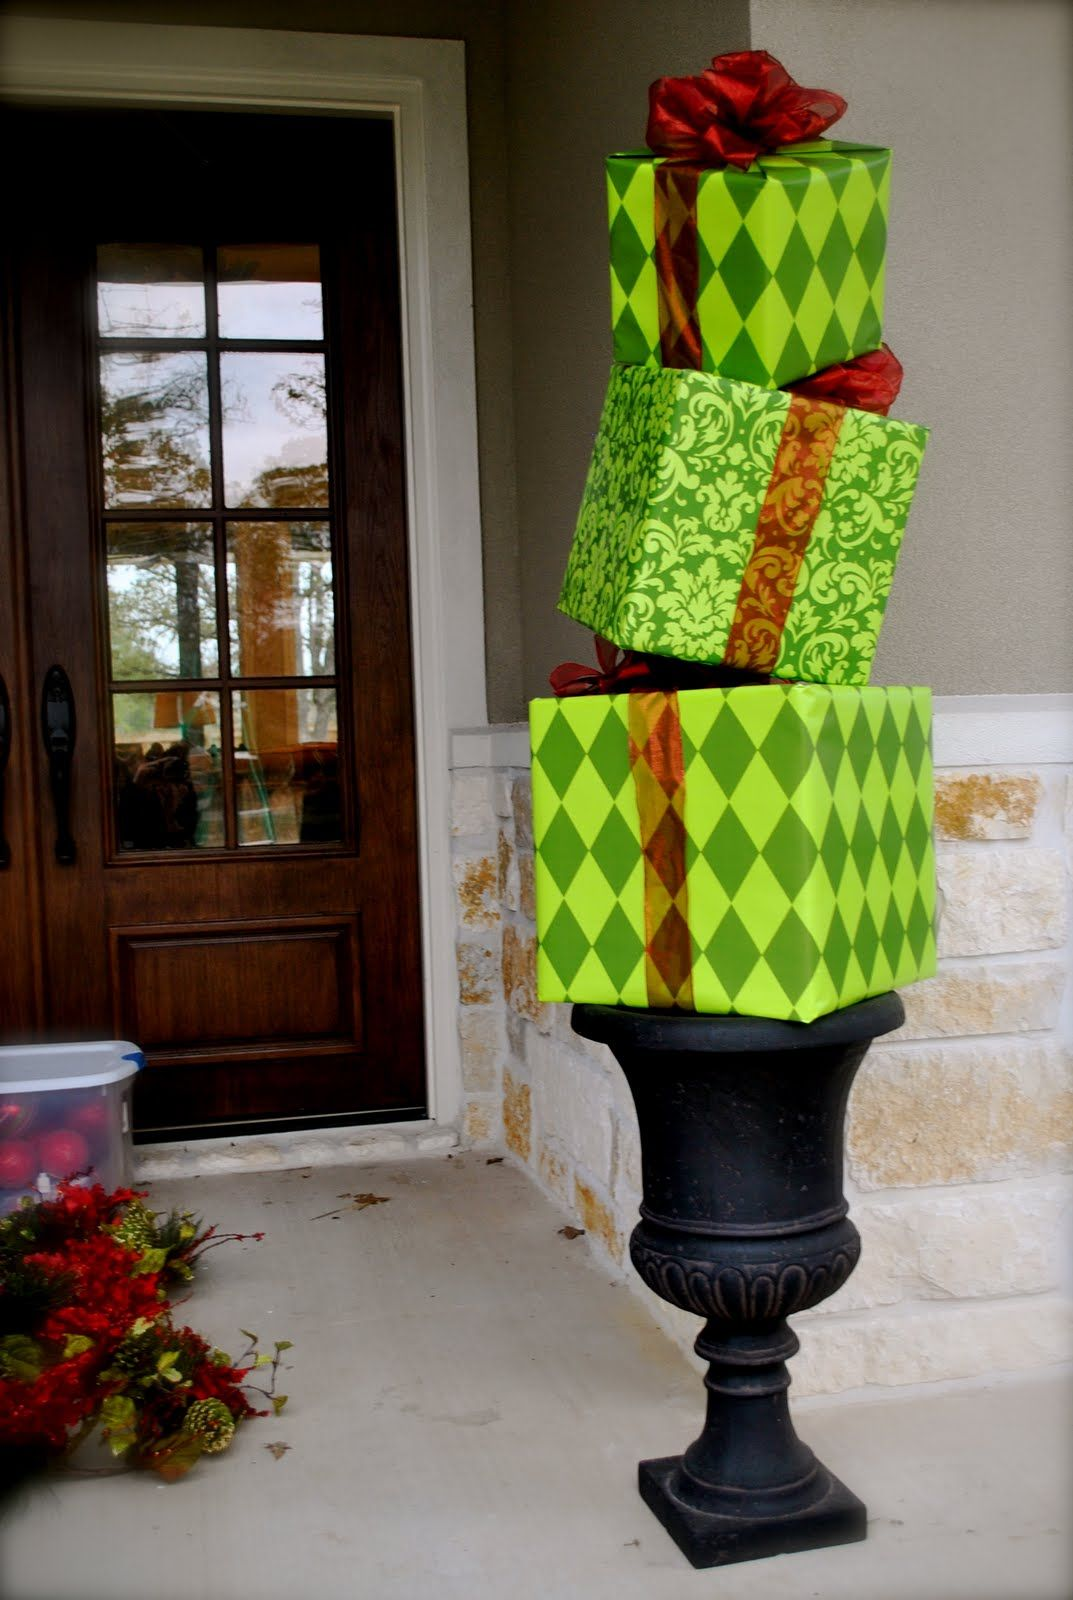 20 Most Incredible Christmas Porch Decorating Ideas   The Front Porch And  Front Door Are Our Favorite Places To Decorate For The Holidays And To Show  Our ...